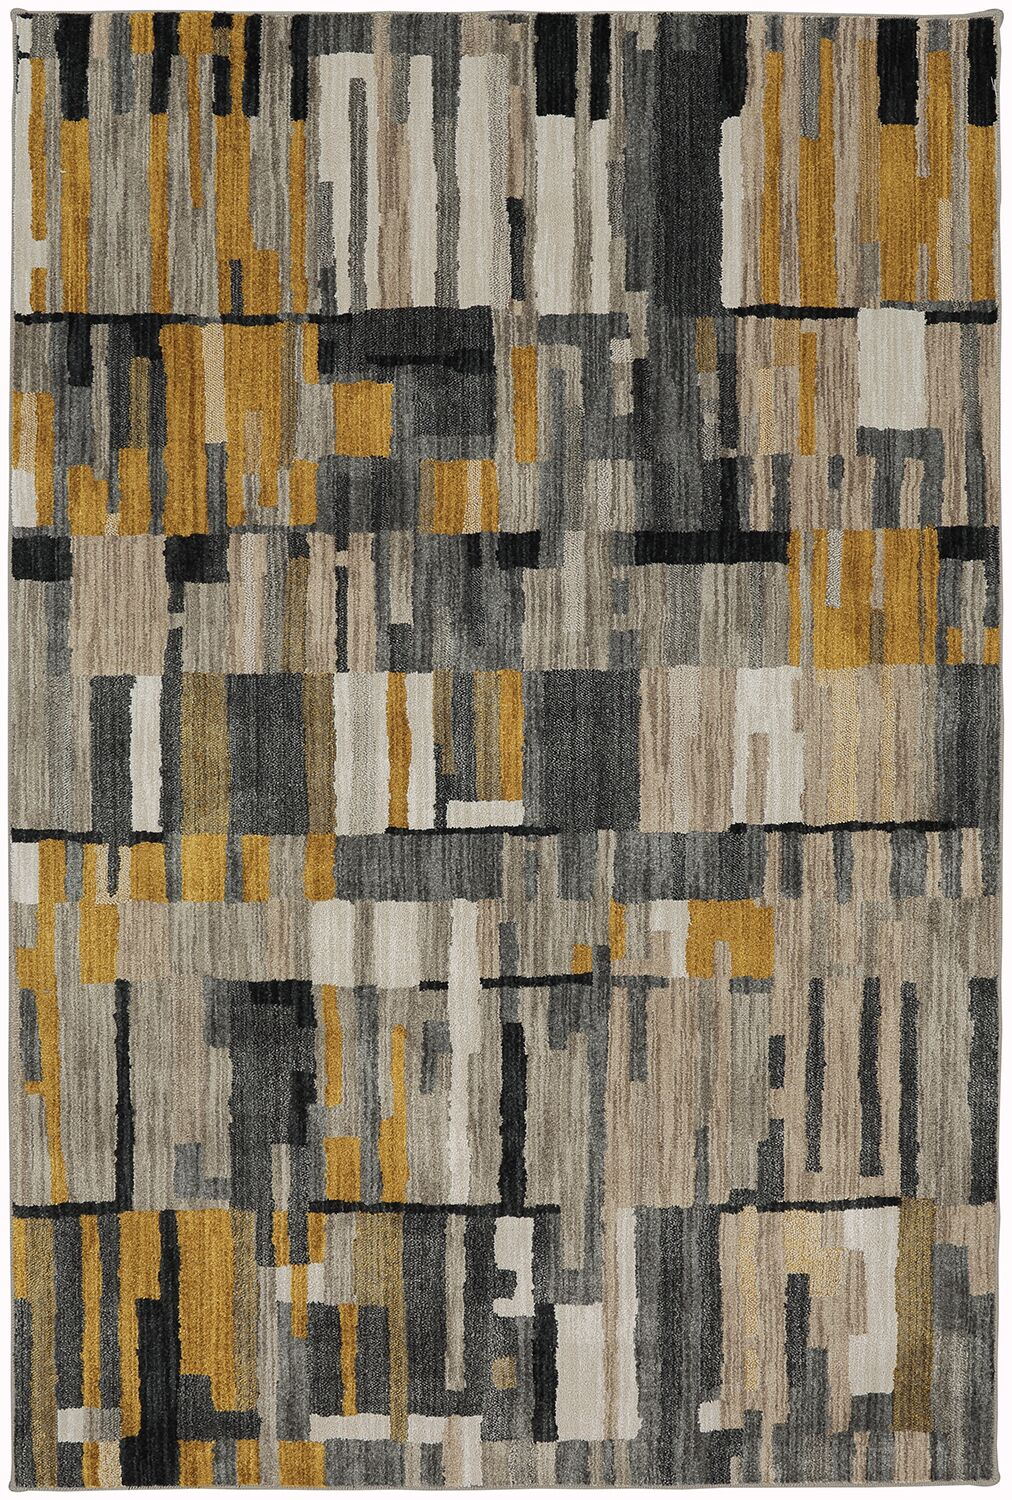 Muse Mustard Yellow Area Rug Rug Size: Rectangle 5'3